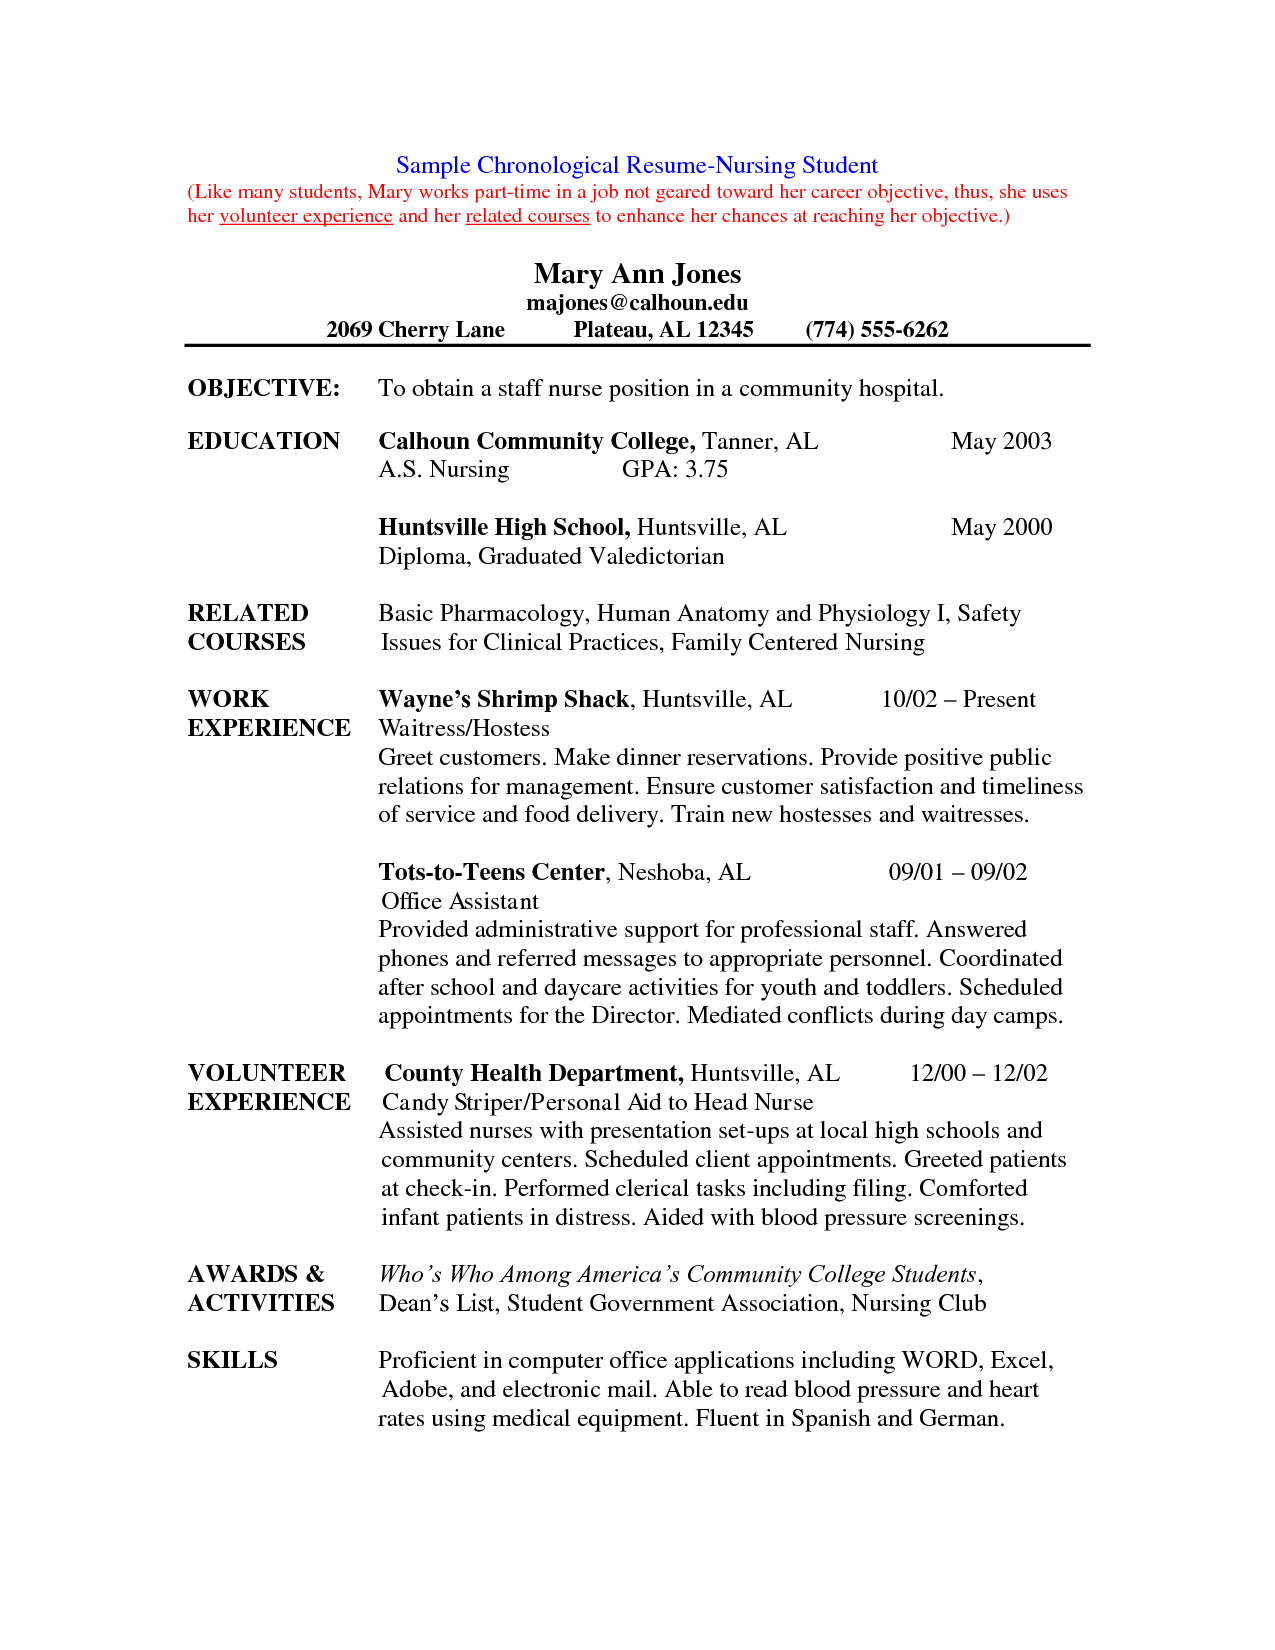 Sample Of Rn Resume Graduate Nurse Resume Template. Resume For New Nurse  Grad New Grad .  New Nurse Resume Template